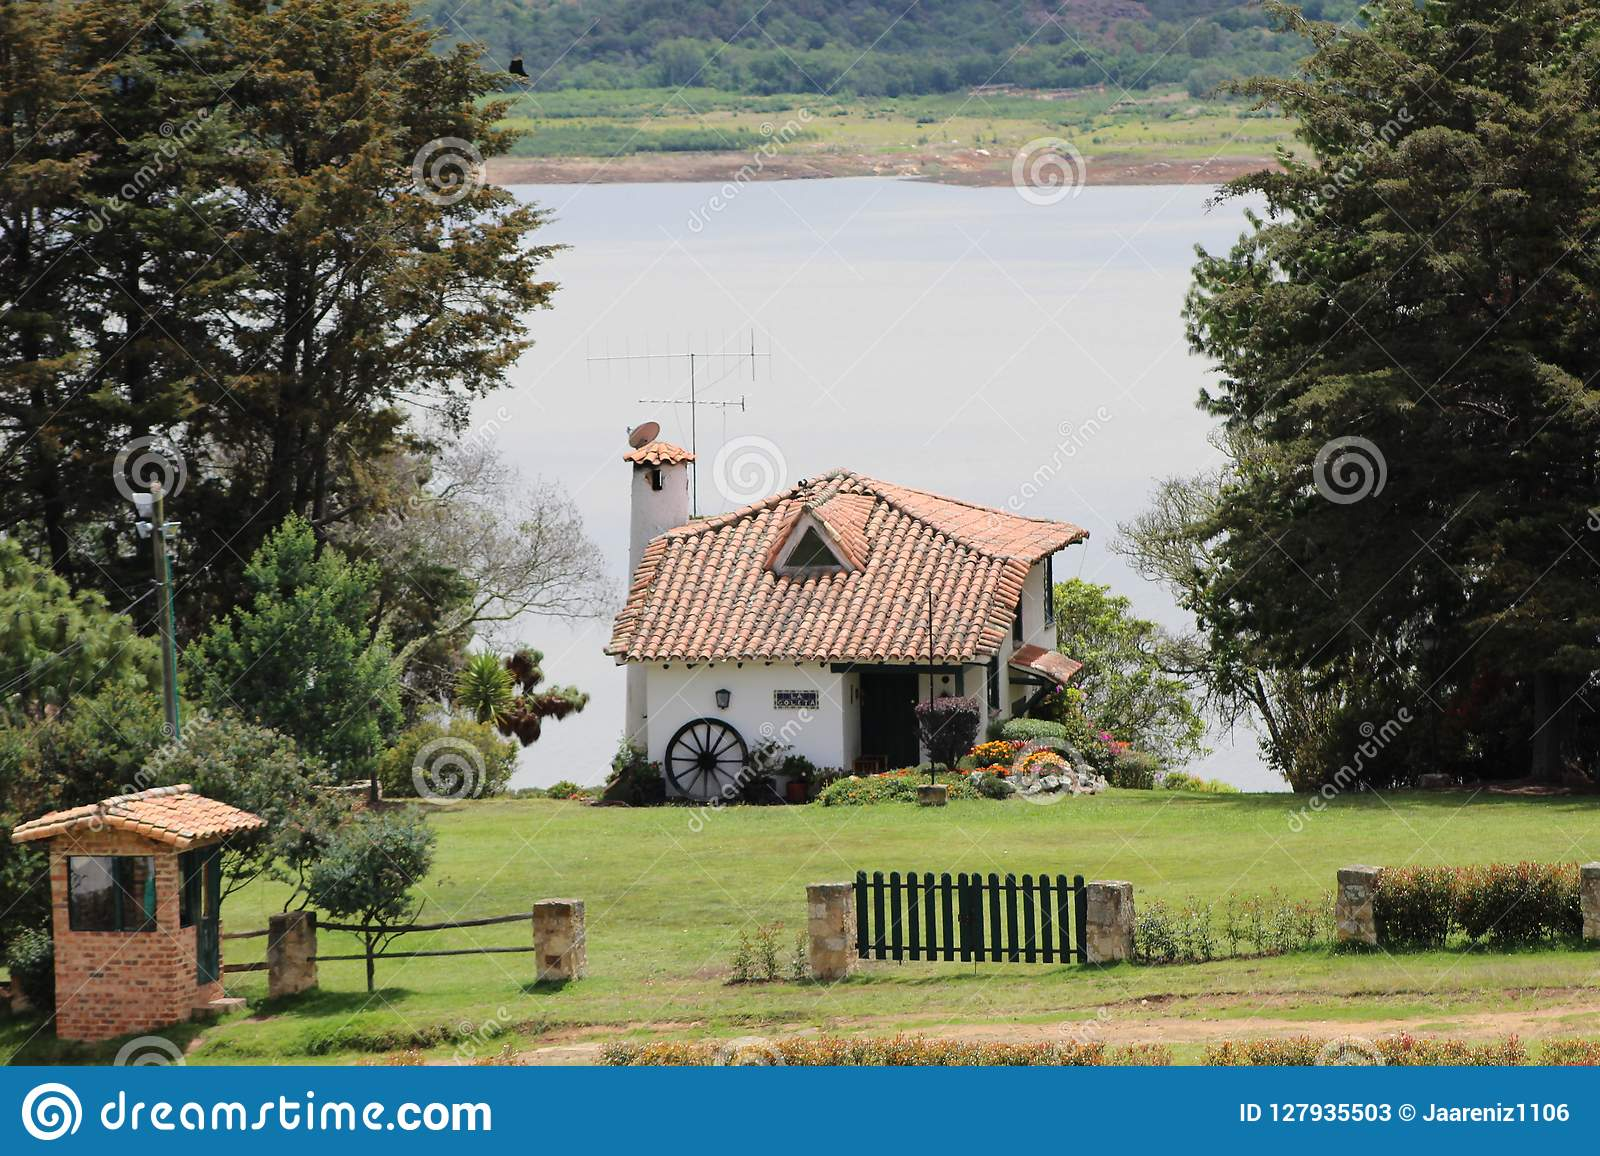 Small house in the countryside of Colombia